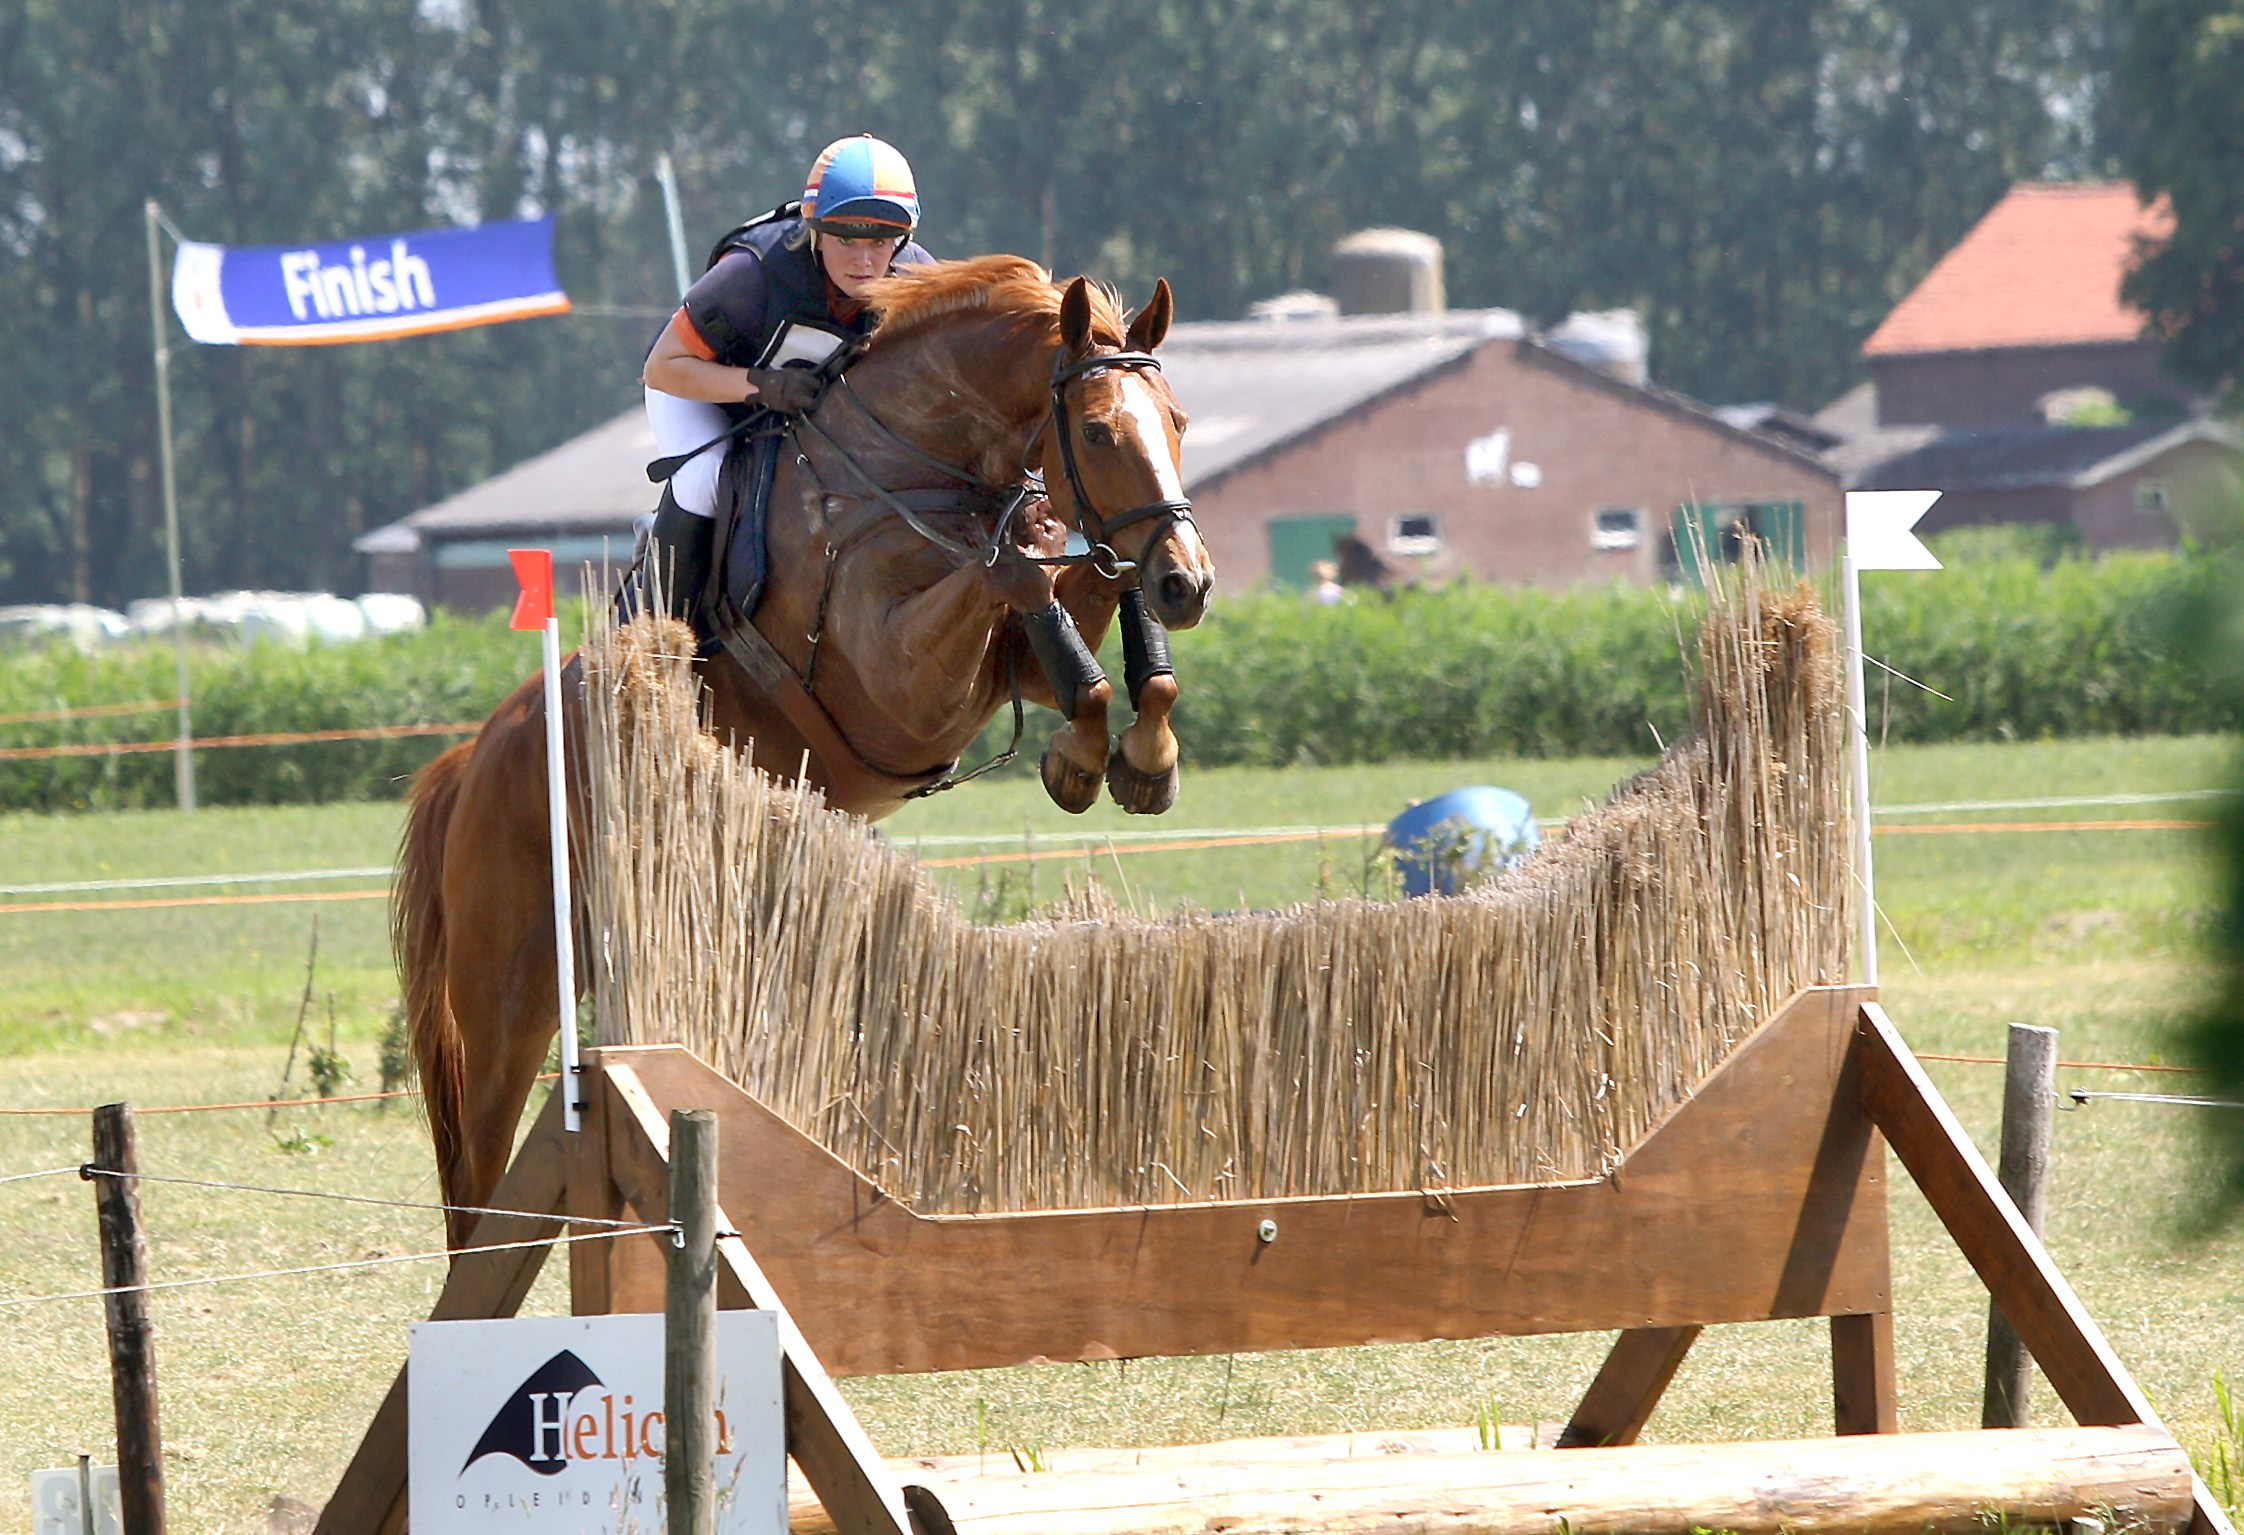 Opleiding tot parcoursbouwer cross-country in februari 2017